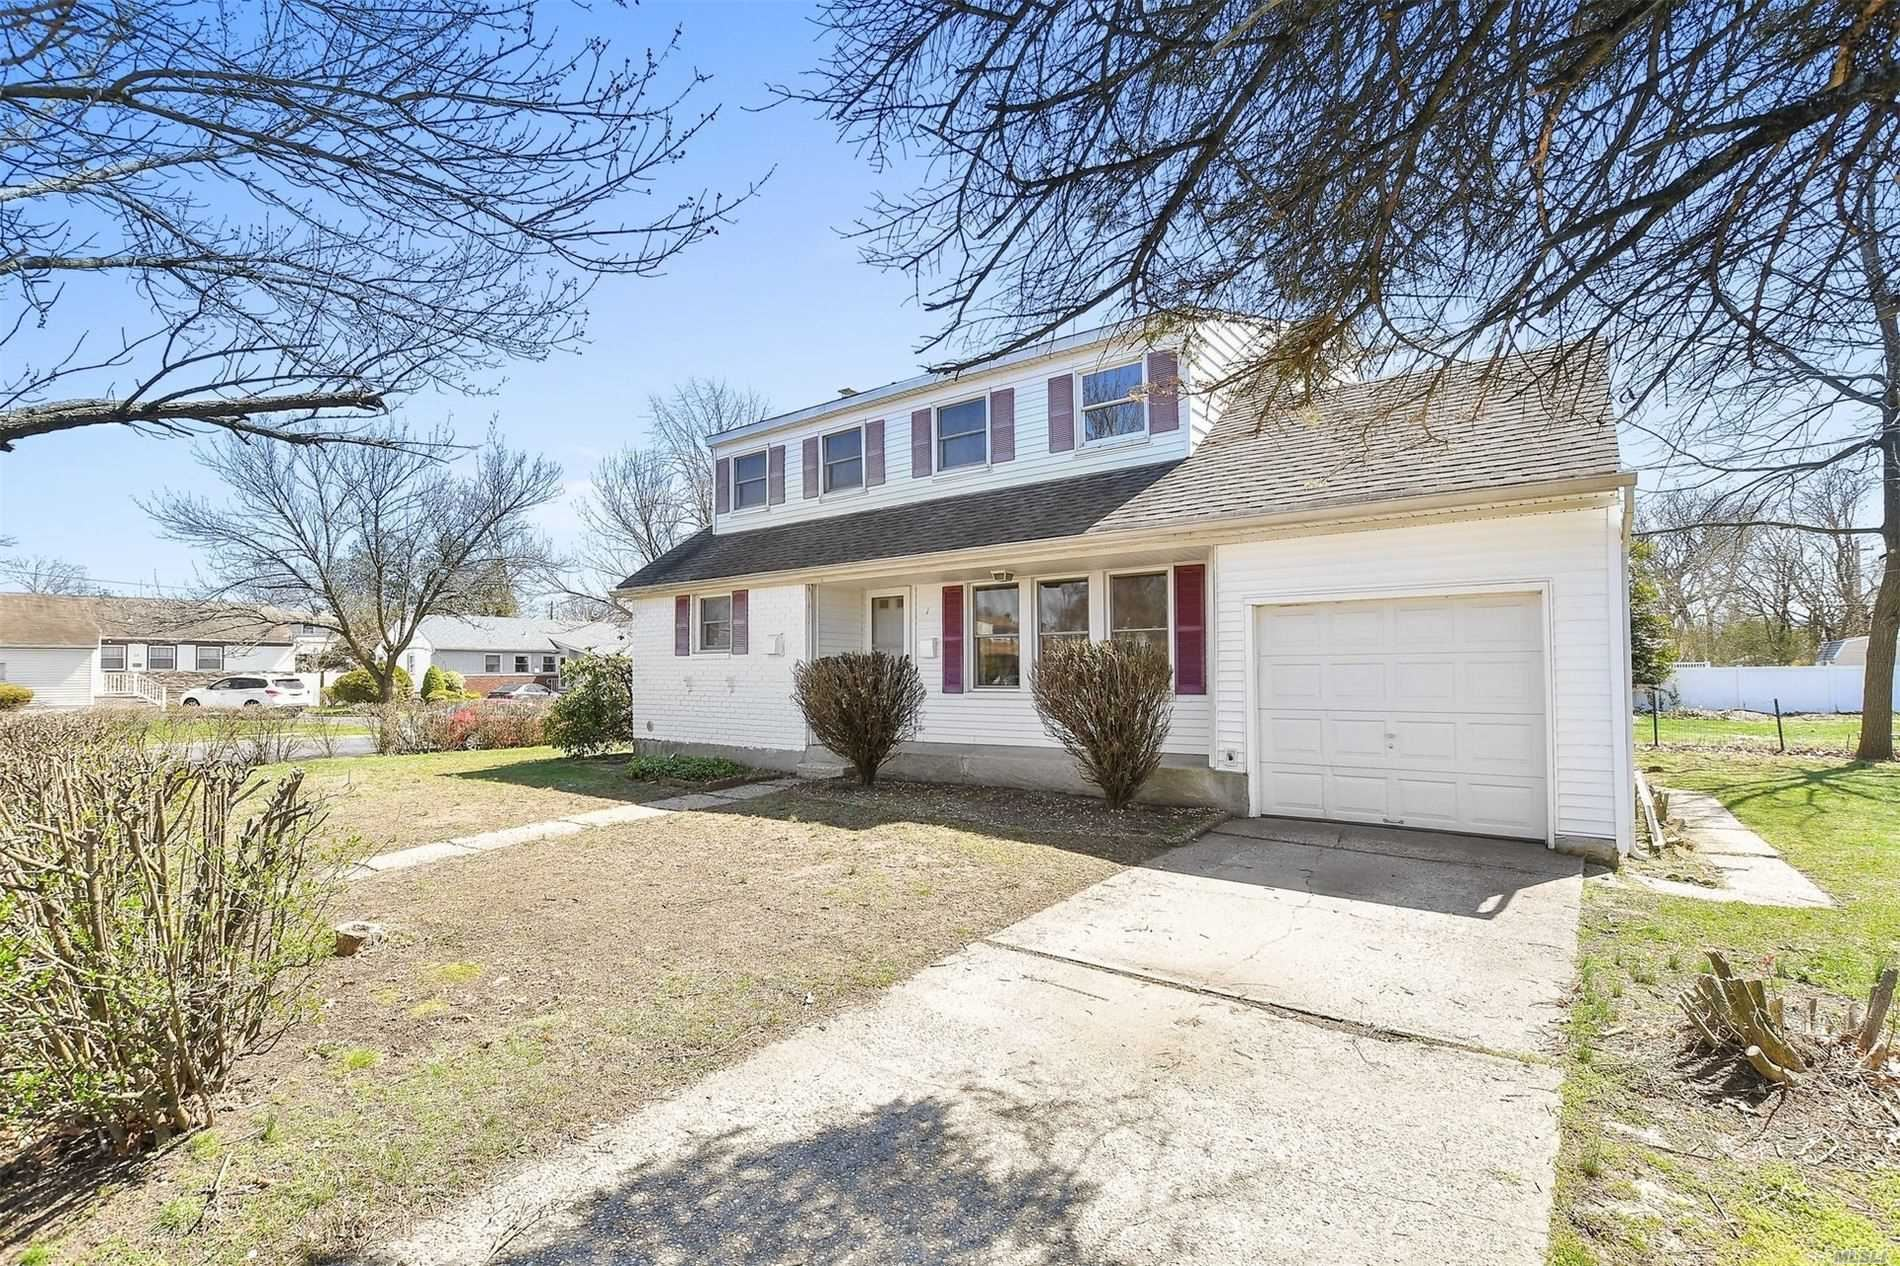 1 North Gate, Massapequa, NY 11758 - MLS#: 3210978